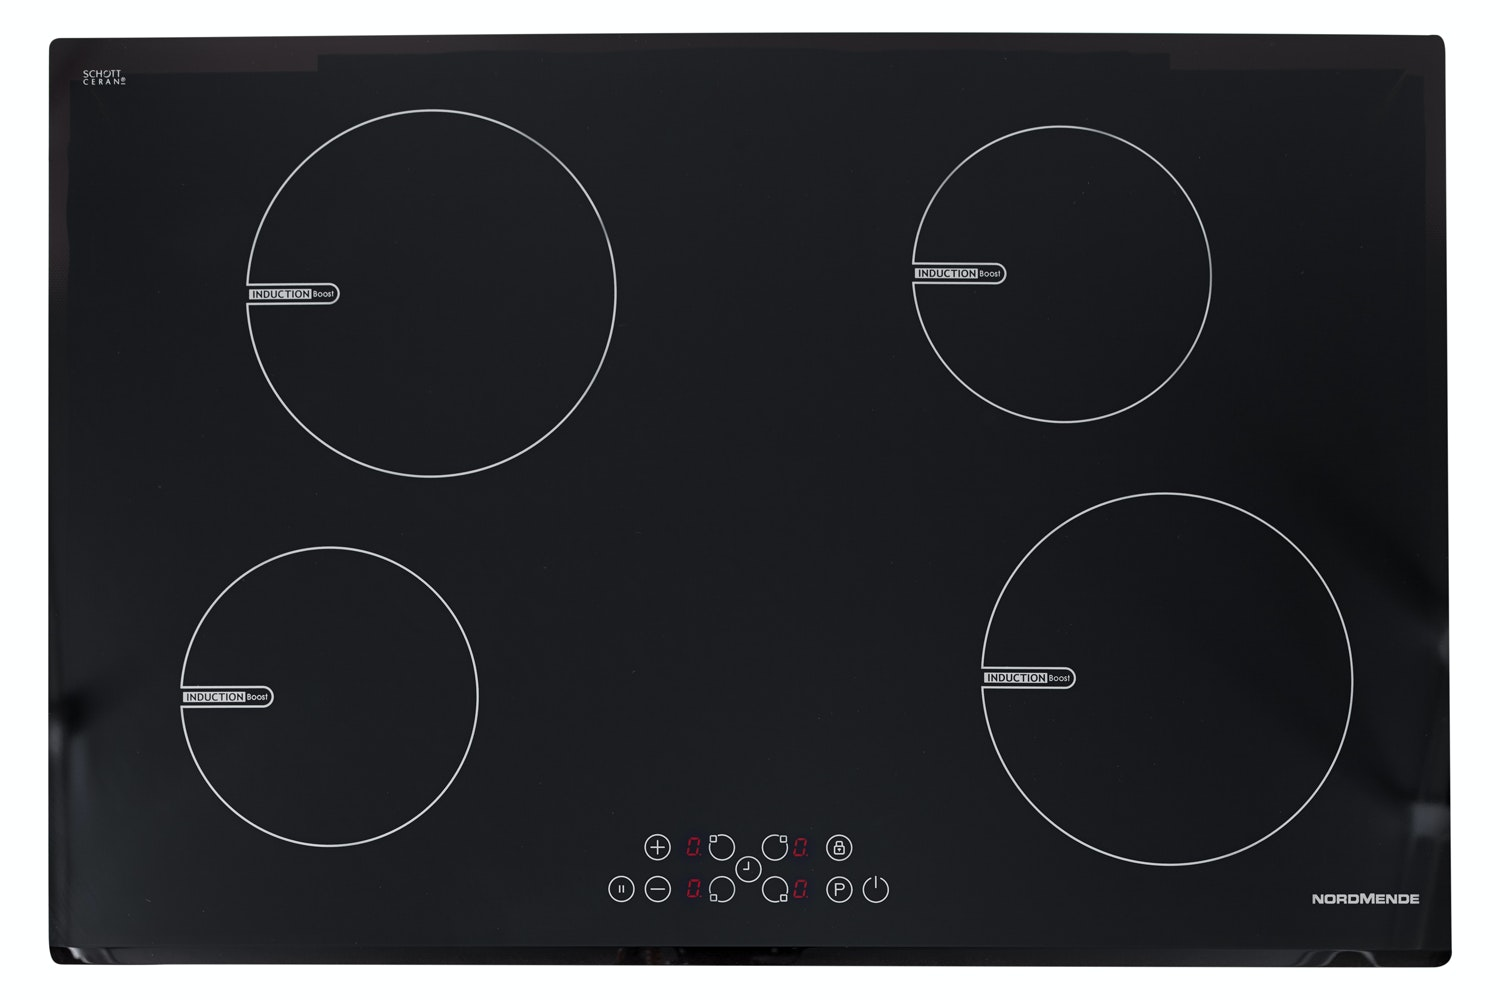 Nordmende 78cm Induction Hob | HCI79FL